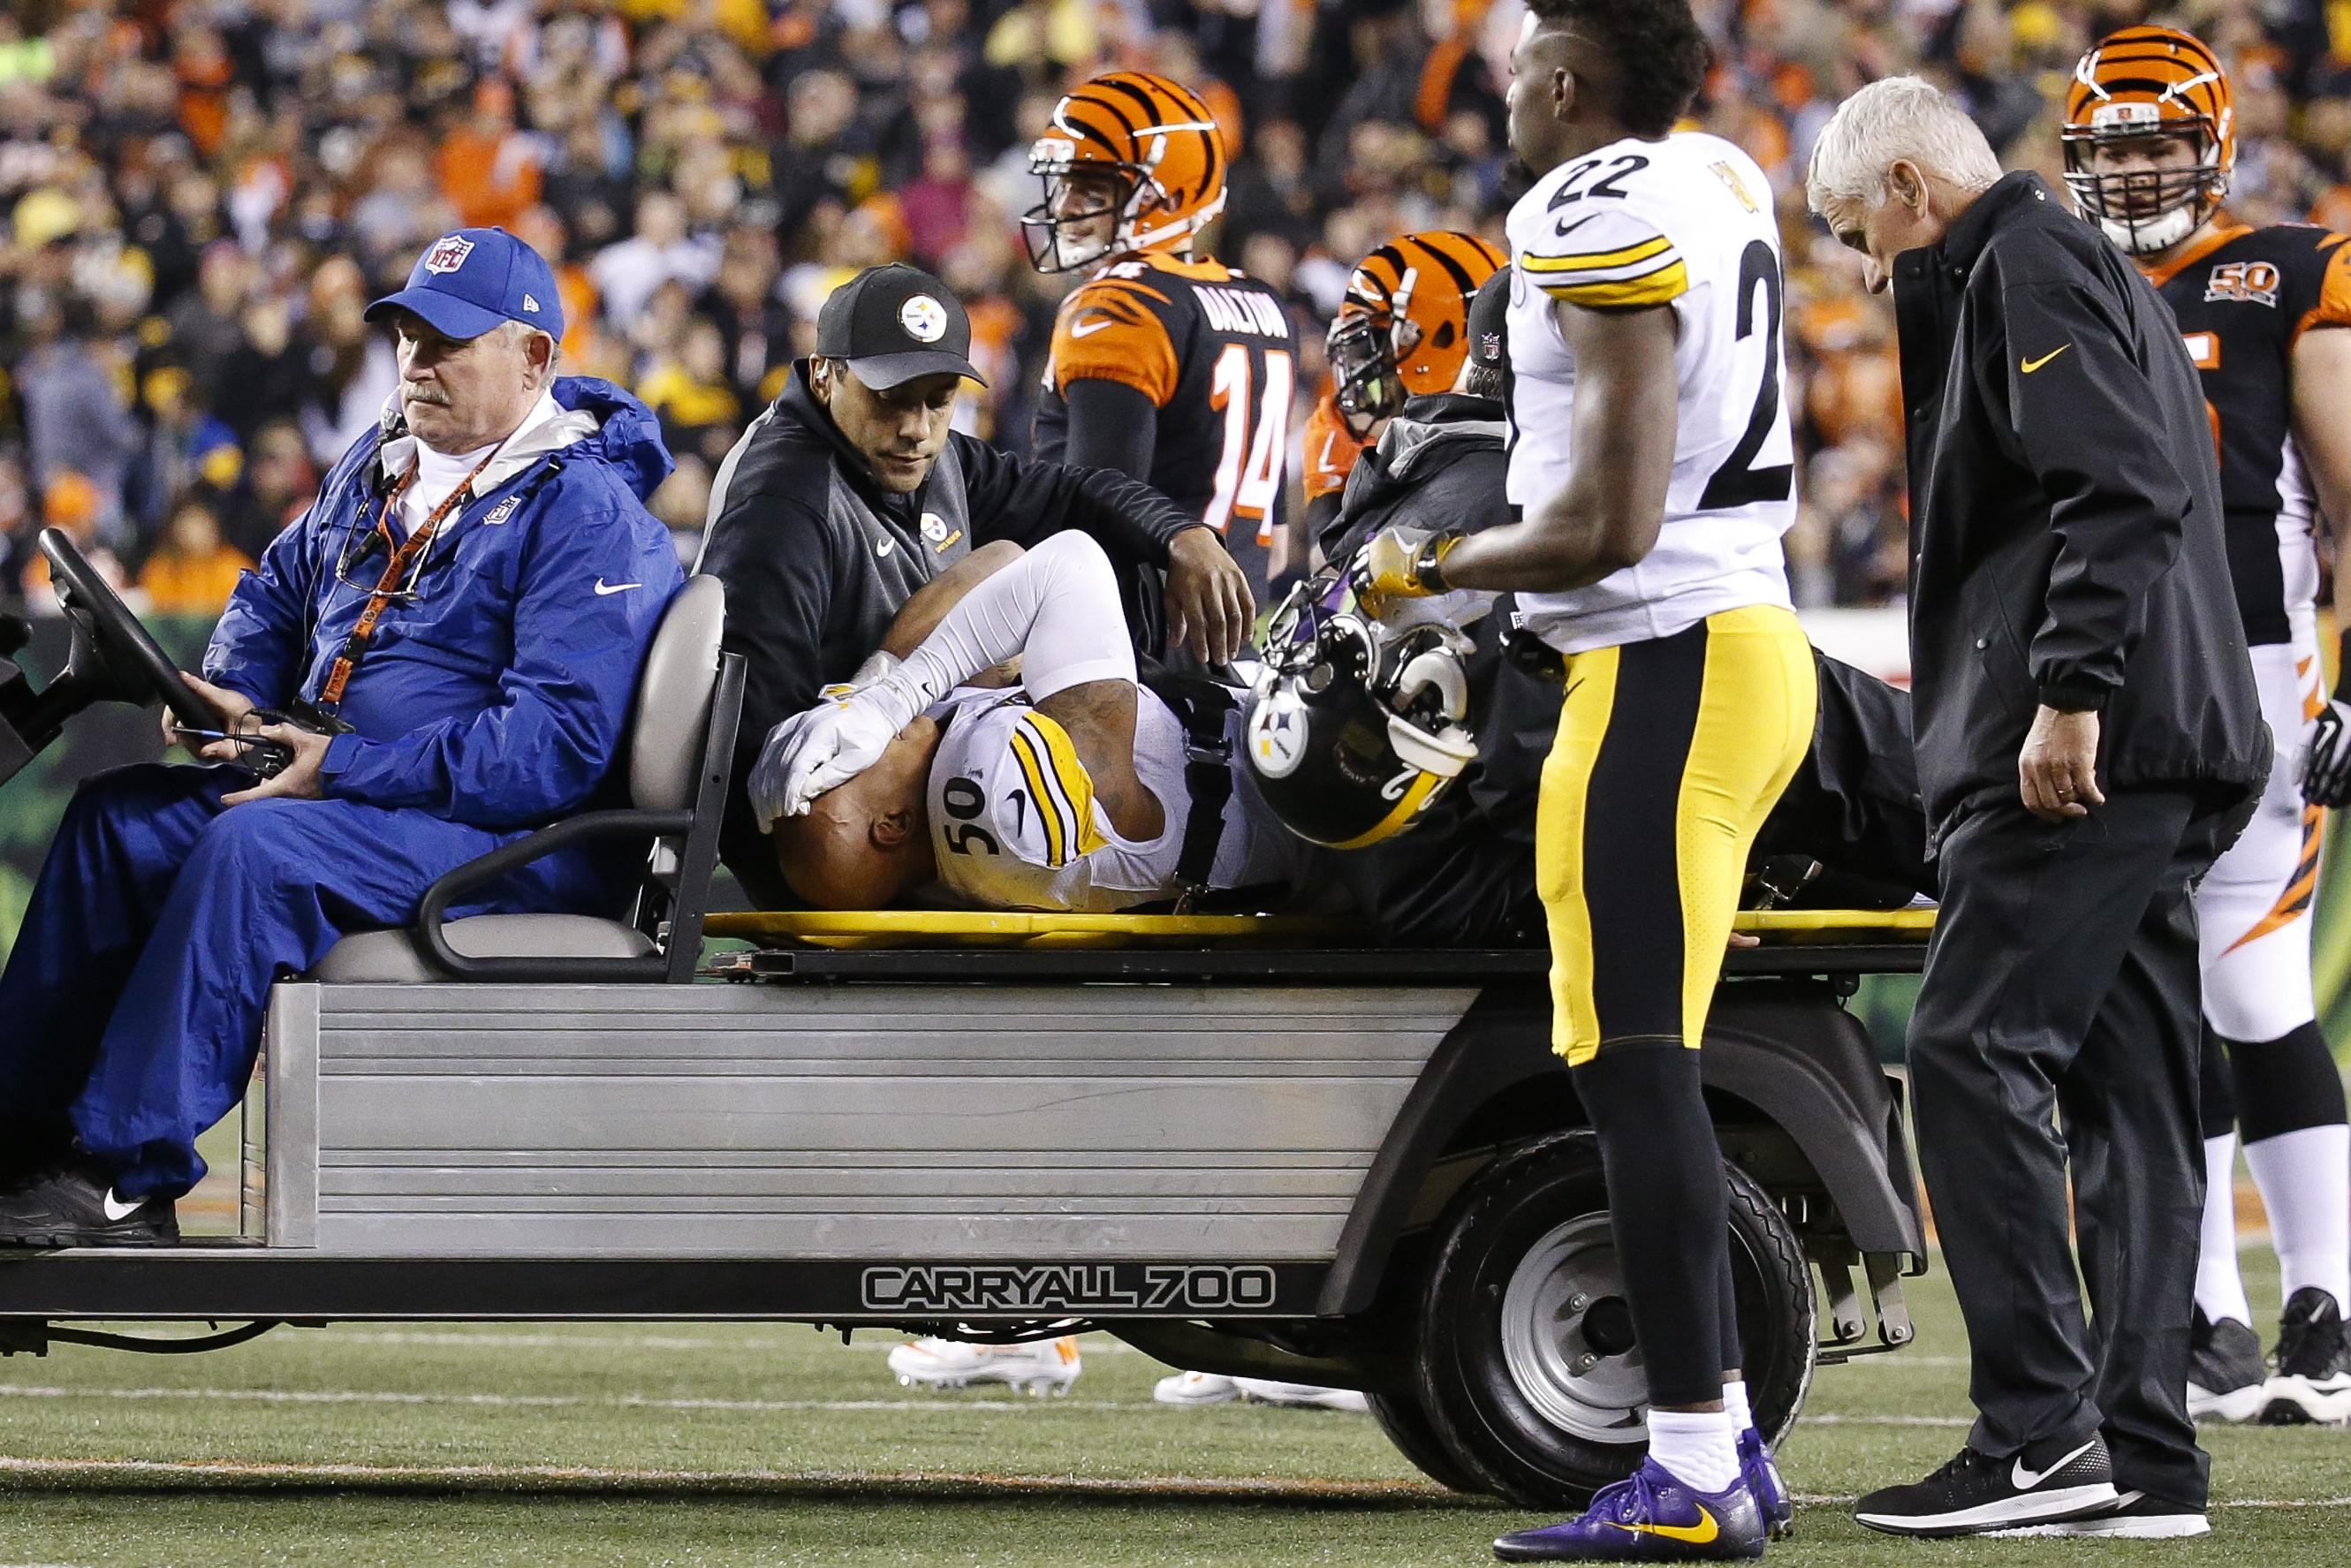 'It's just weird'; Steelers rallying around injured Shazier